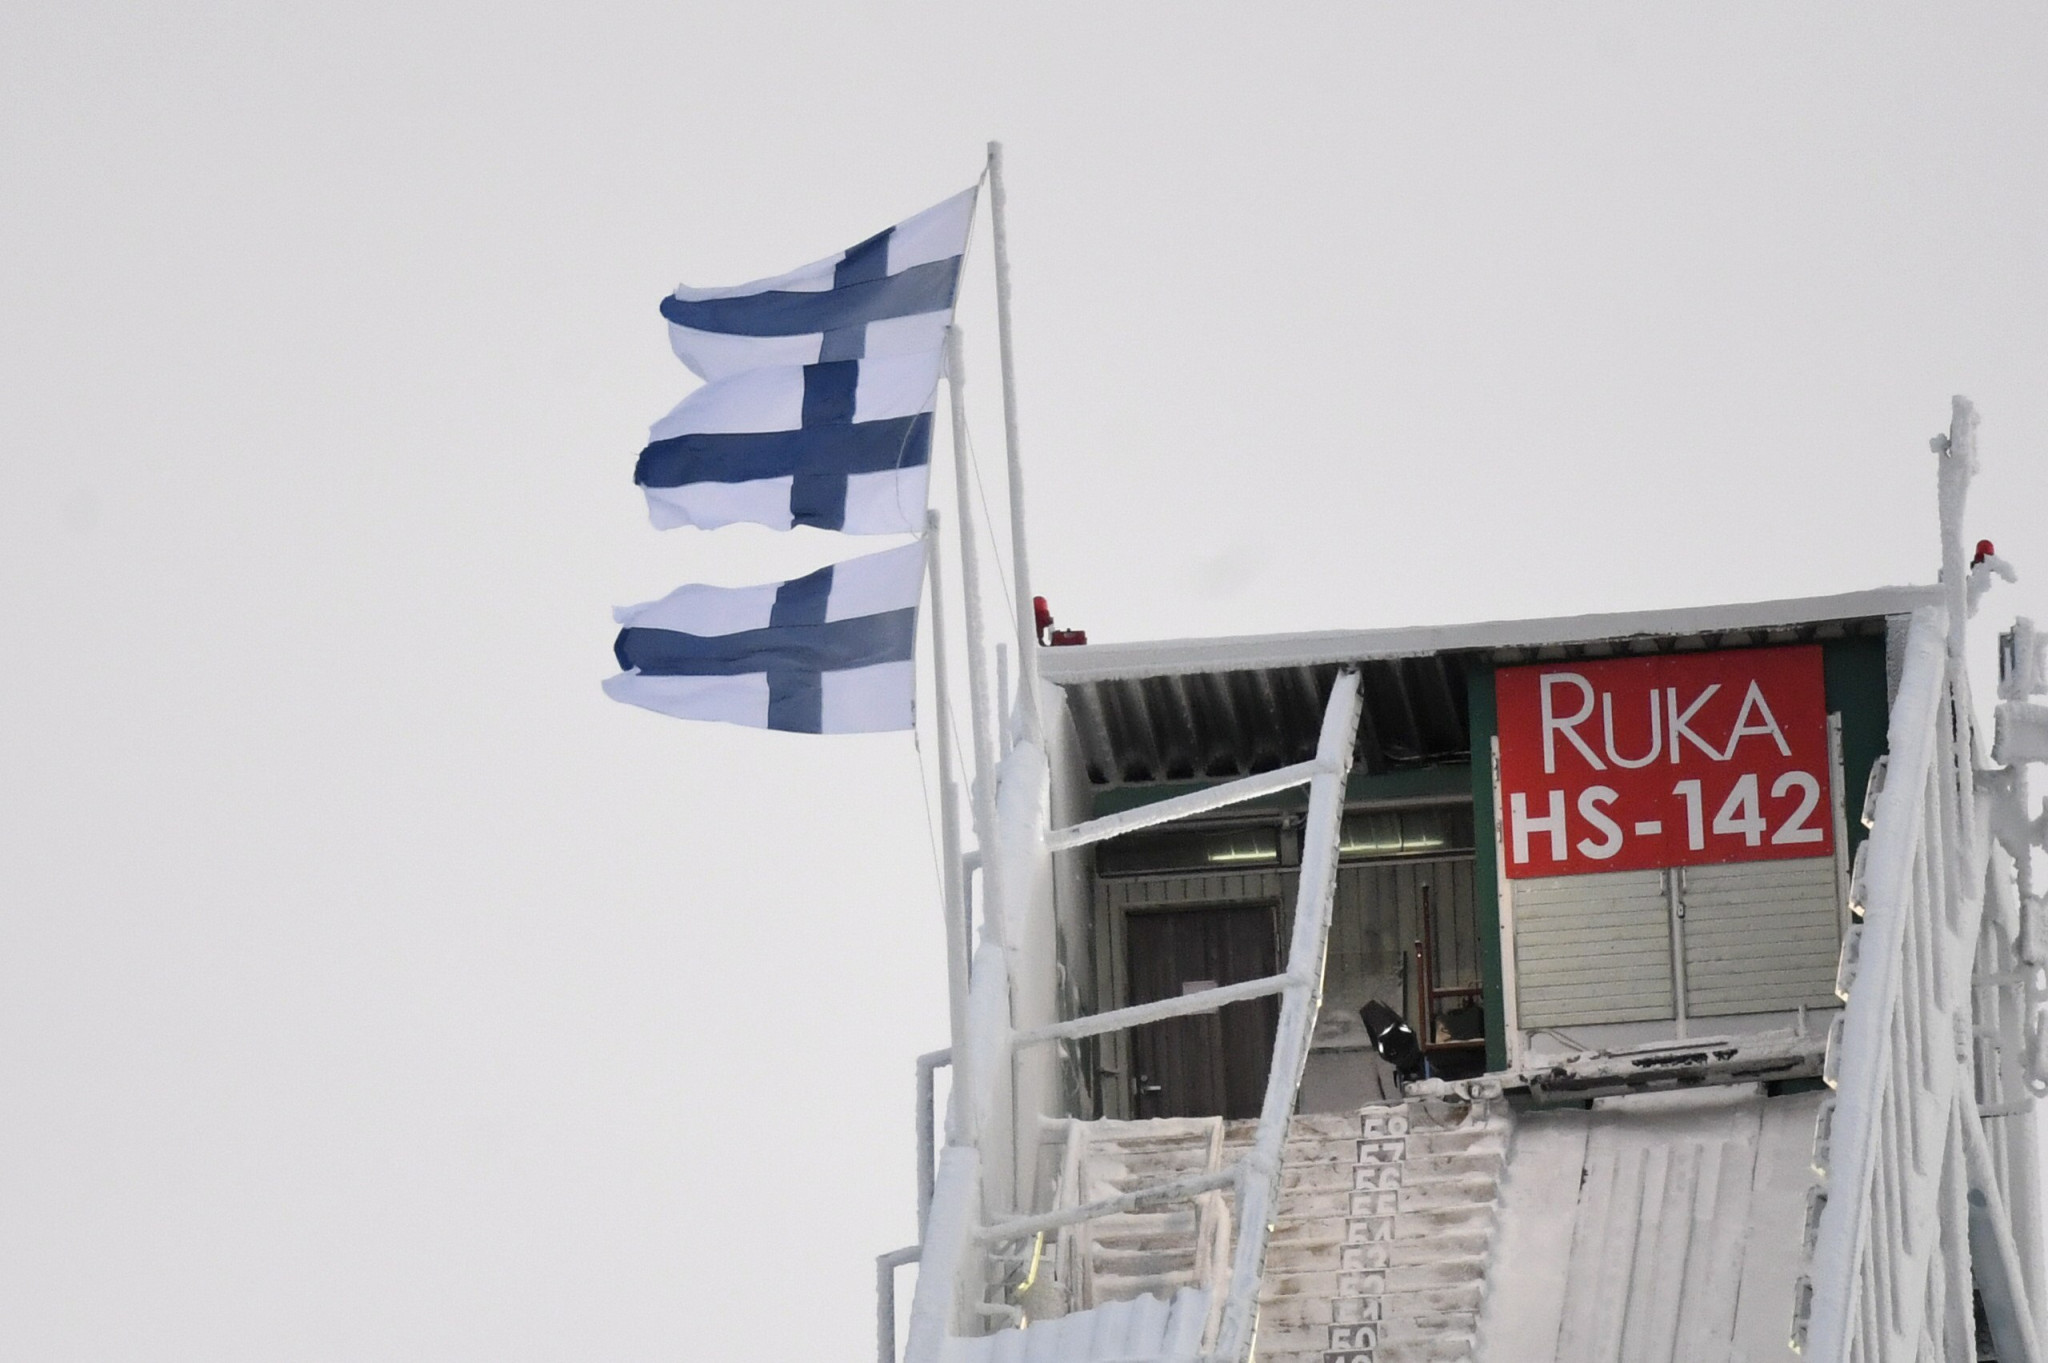 Snow conditions set to allow World Cup events in Ruka to go ahead